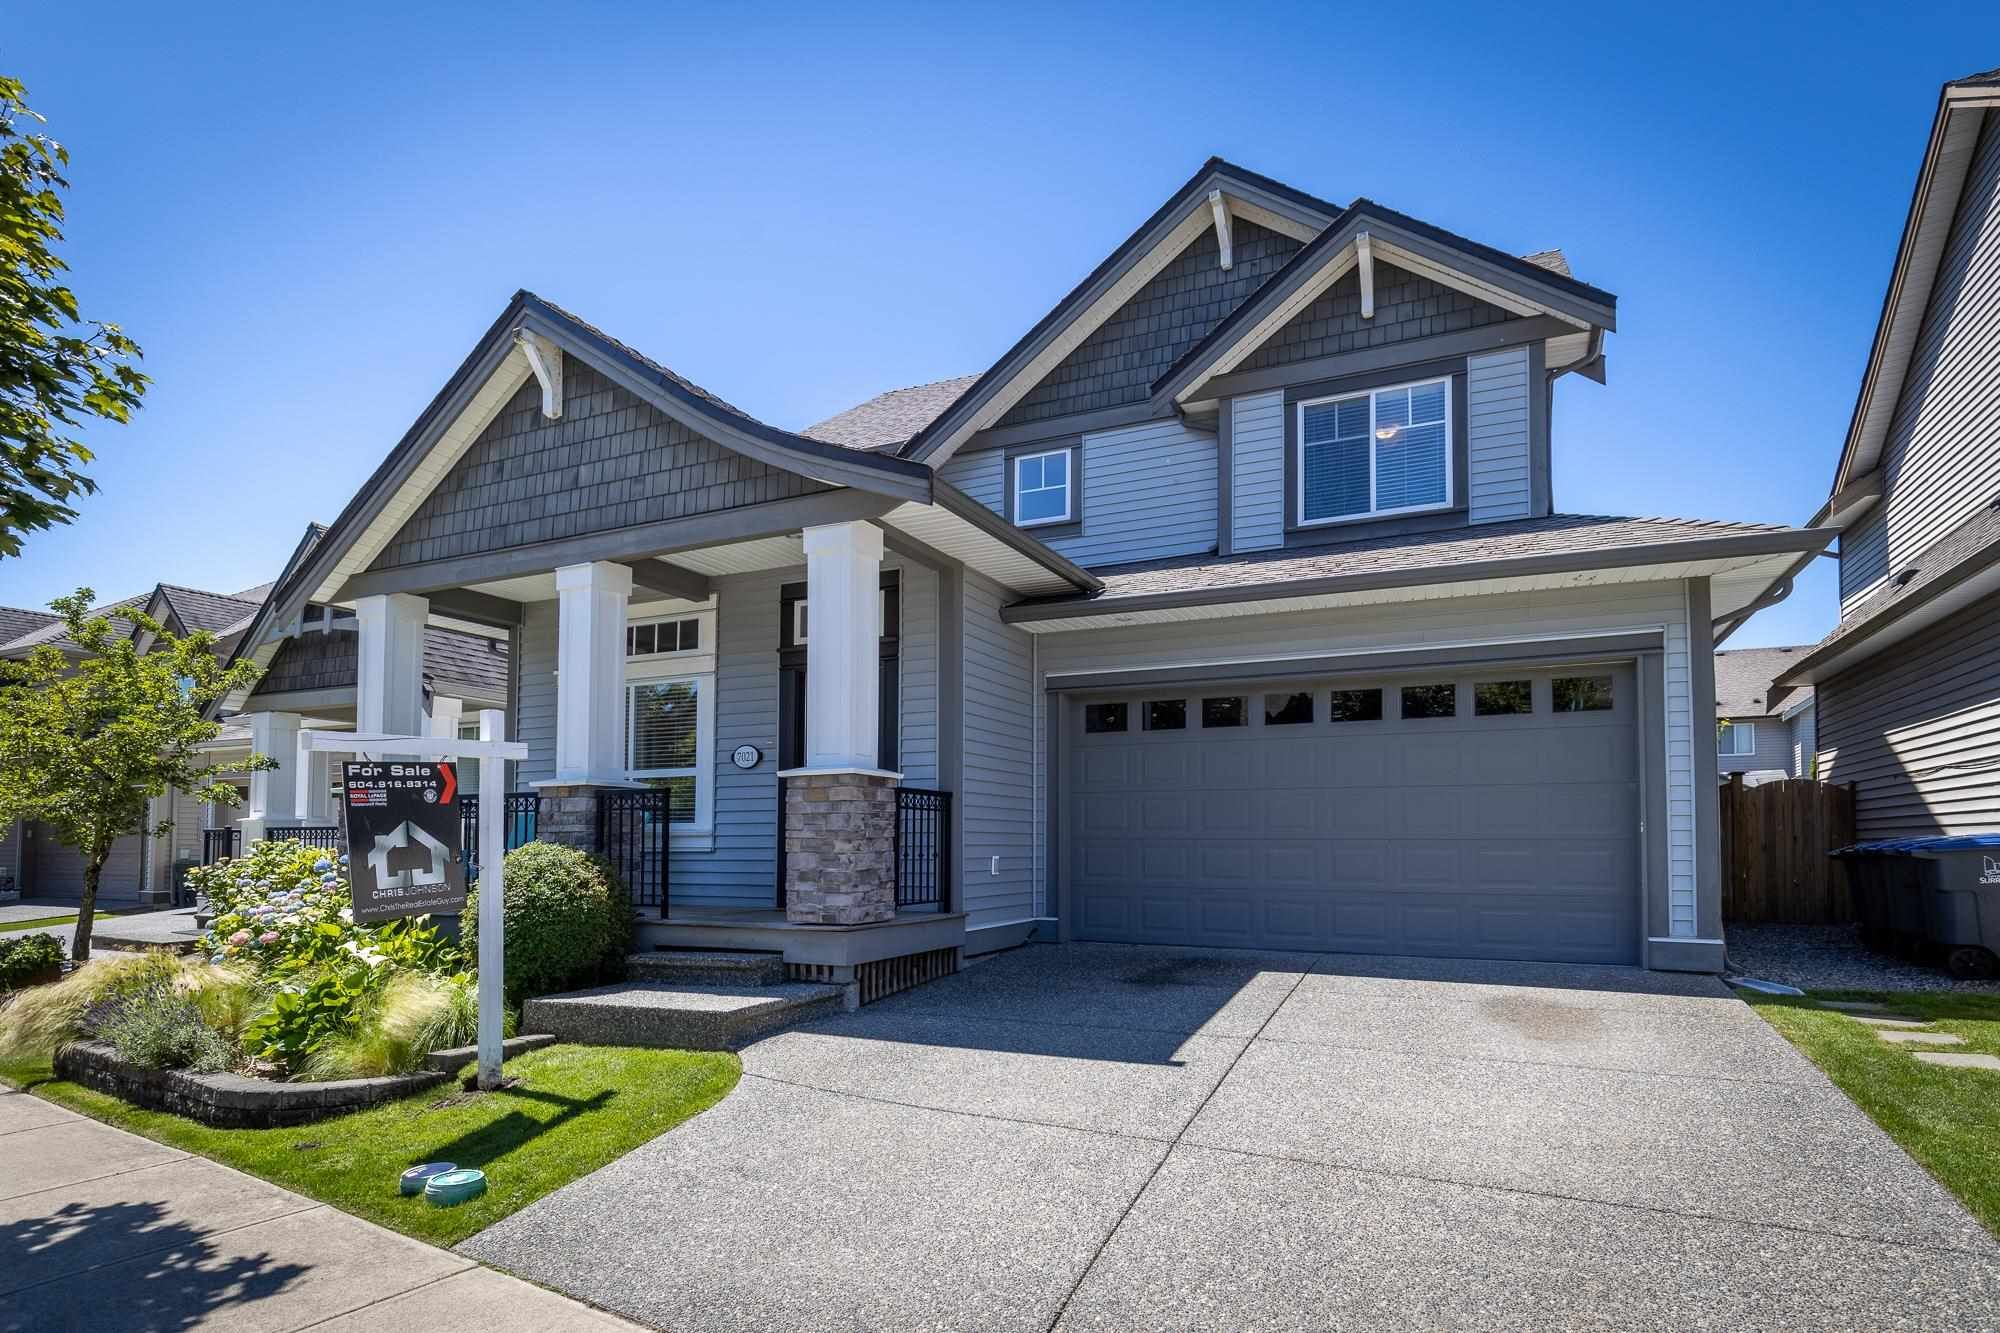 """Main Photo: 7021 195A Street in Surrey: Clayton House for sale in """"Clayton"""" (Cloverdale)  : MLS®# R2594485"""